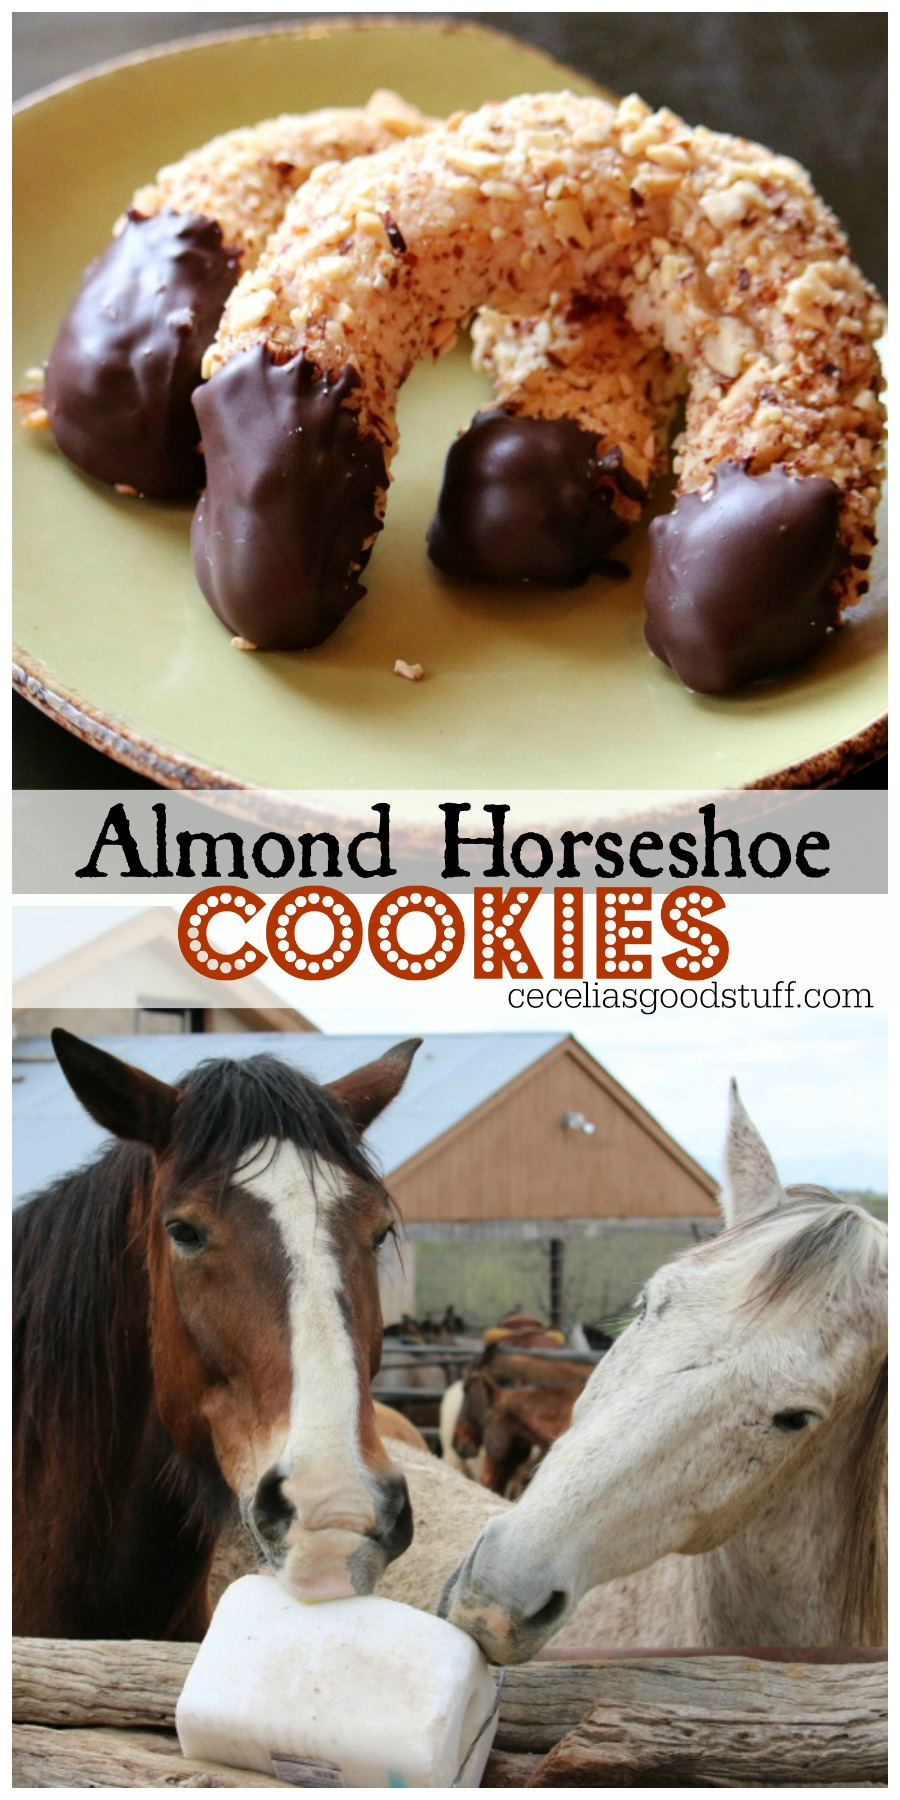 Recipe for Almond Horseshoe Cookies